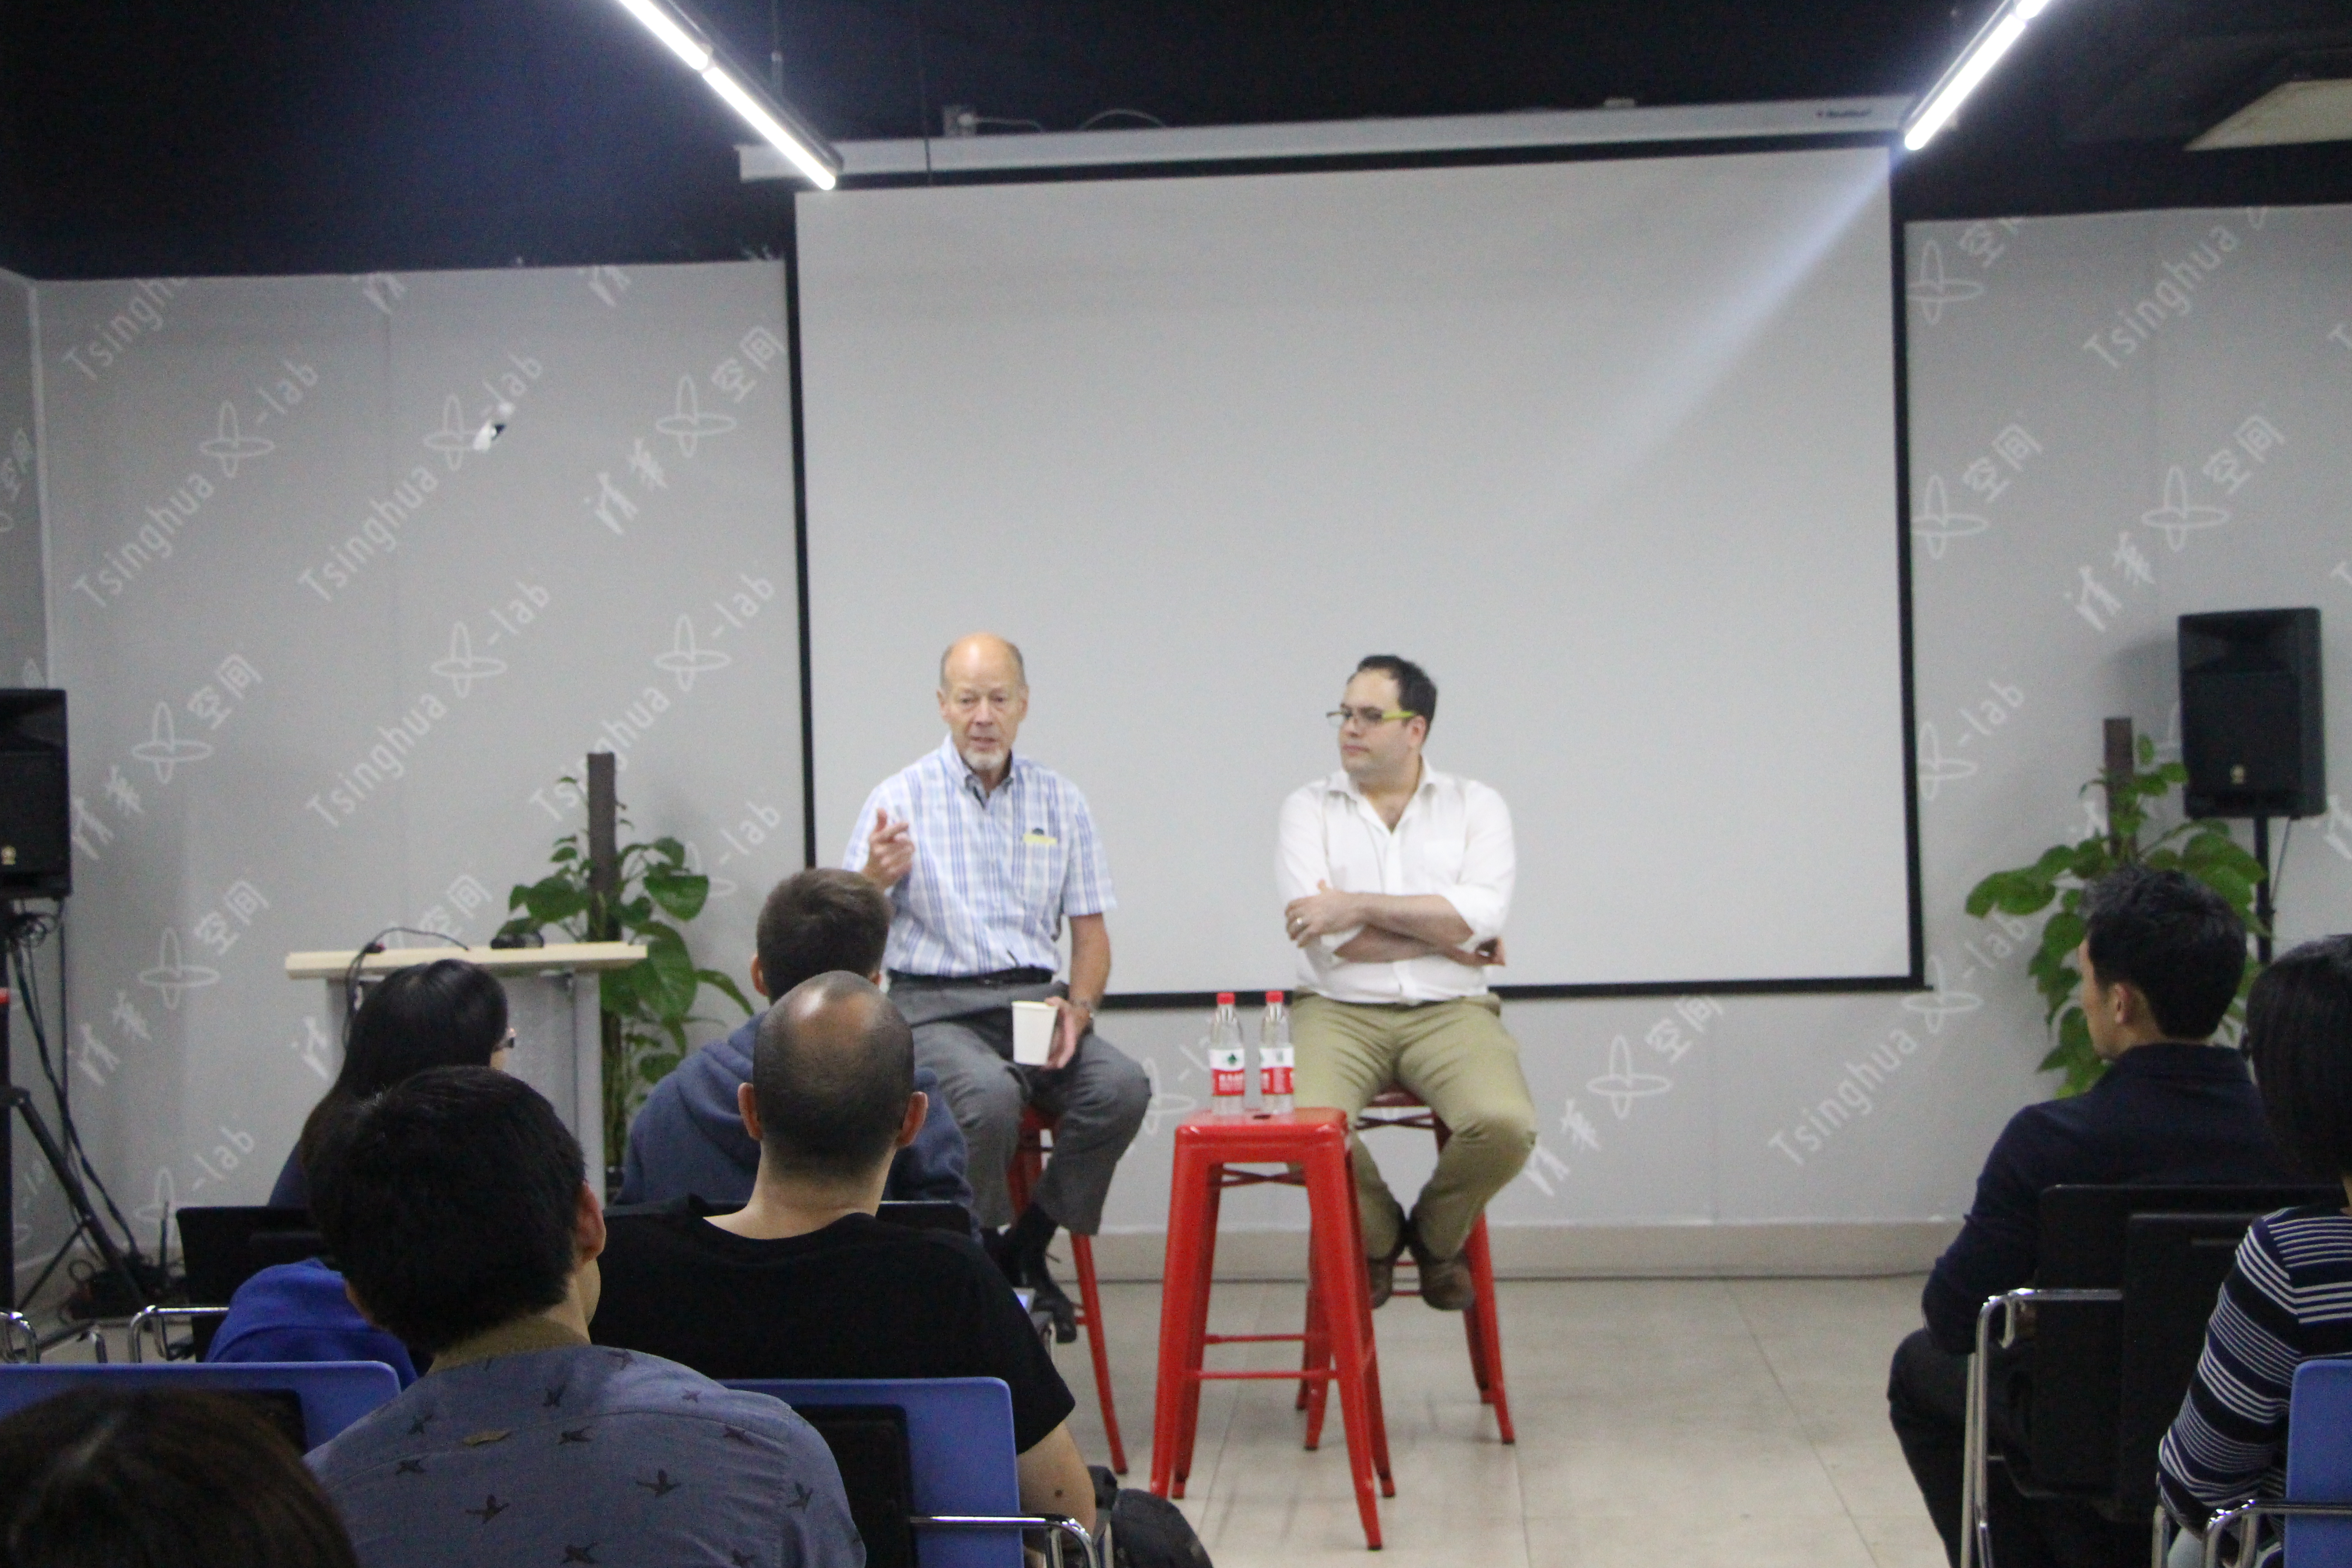 【x-lab Talk】IP - Strategic Asset Management by Ian Harvey and Ziv Rotenberg